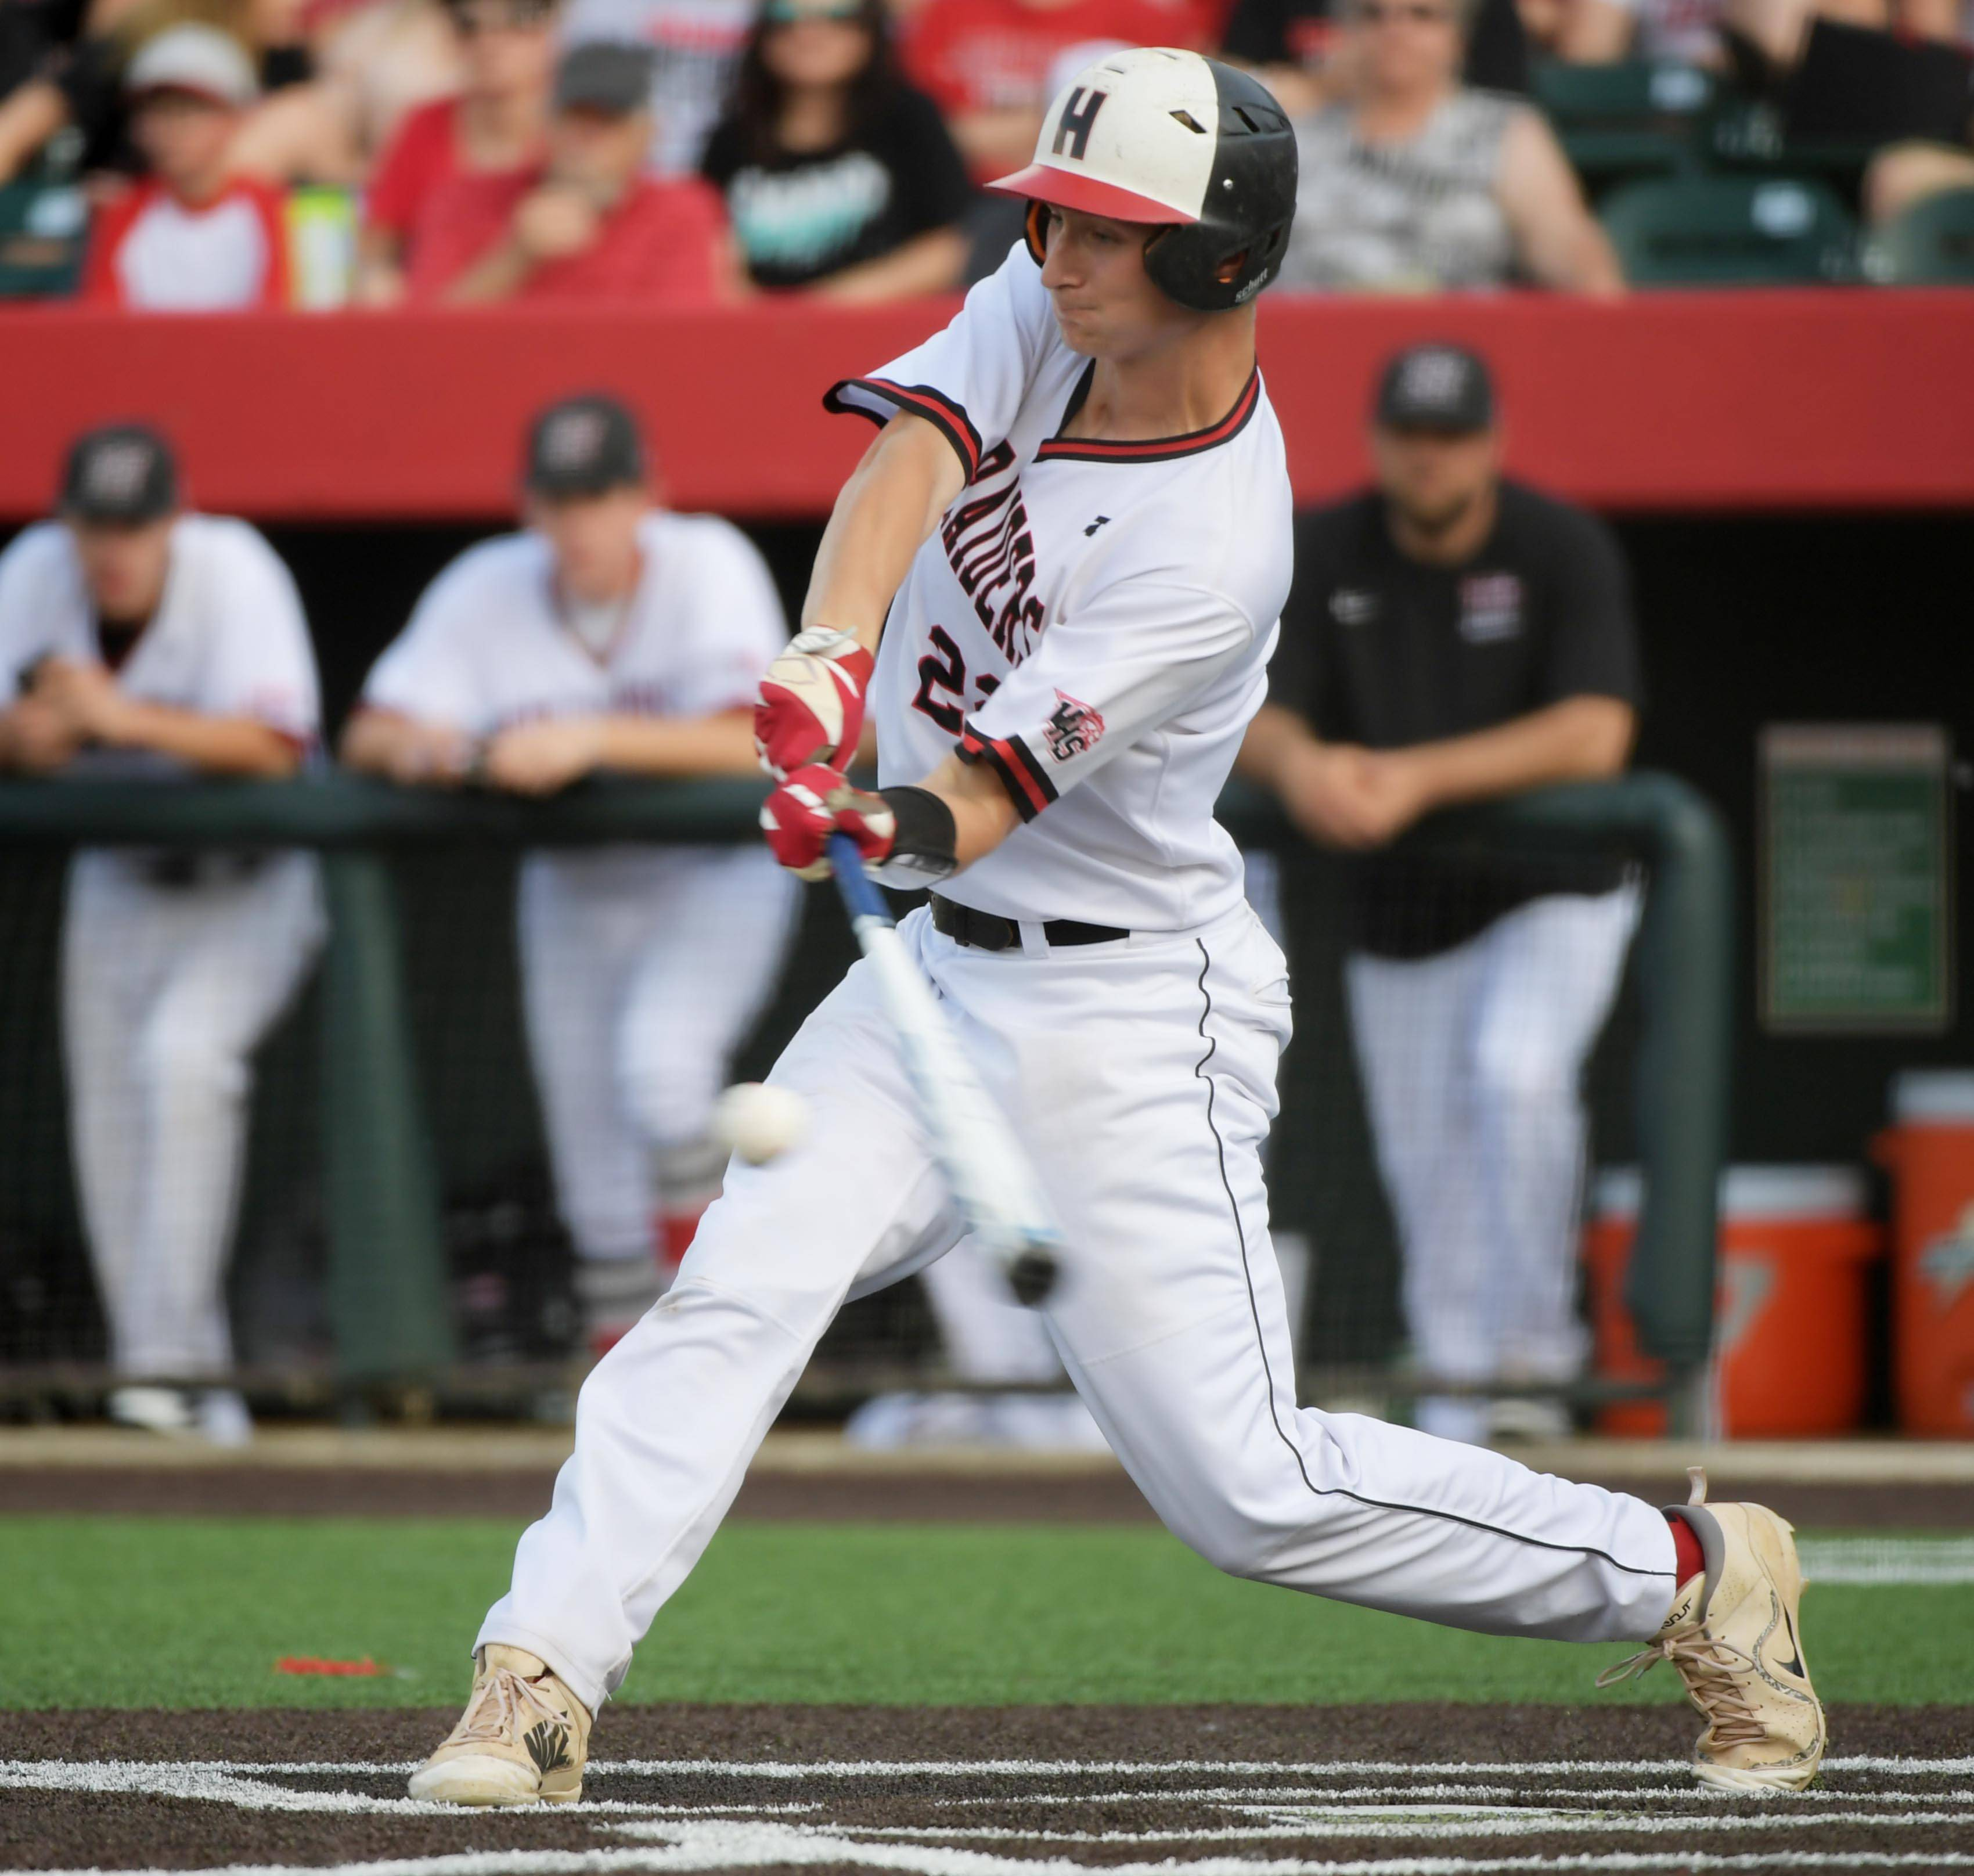 Huntley's Hunter Rumachik connects for a hit in the second inning against Plainfield North in the Class 4A baseball state championship game at Route 66 Stadium in Joliet on Saturday.